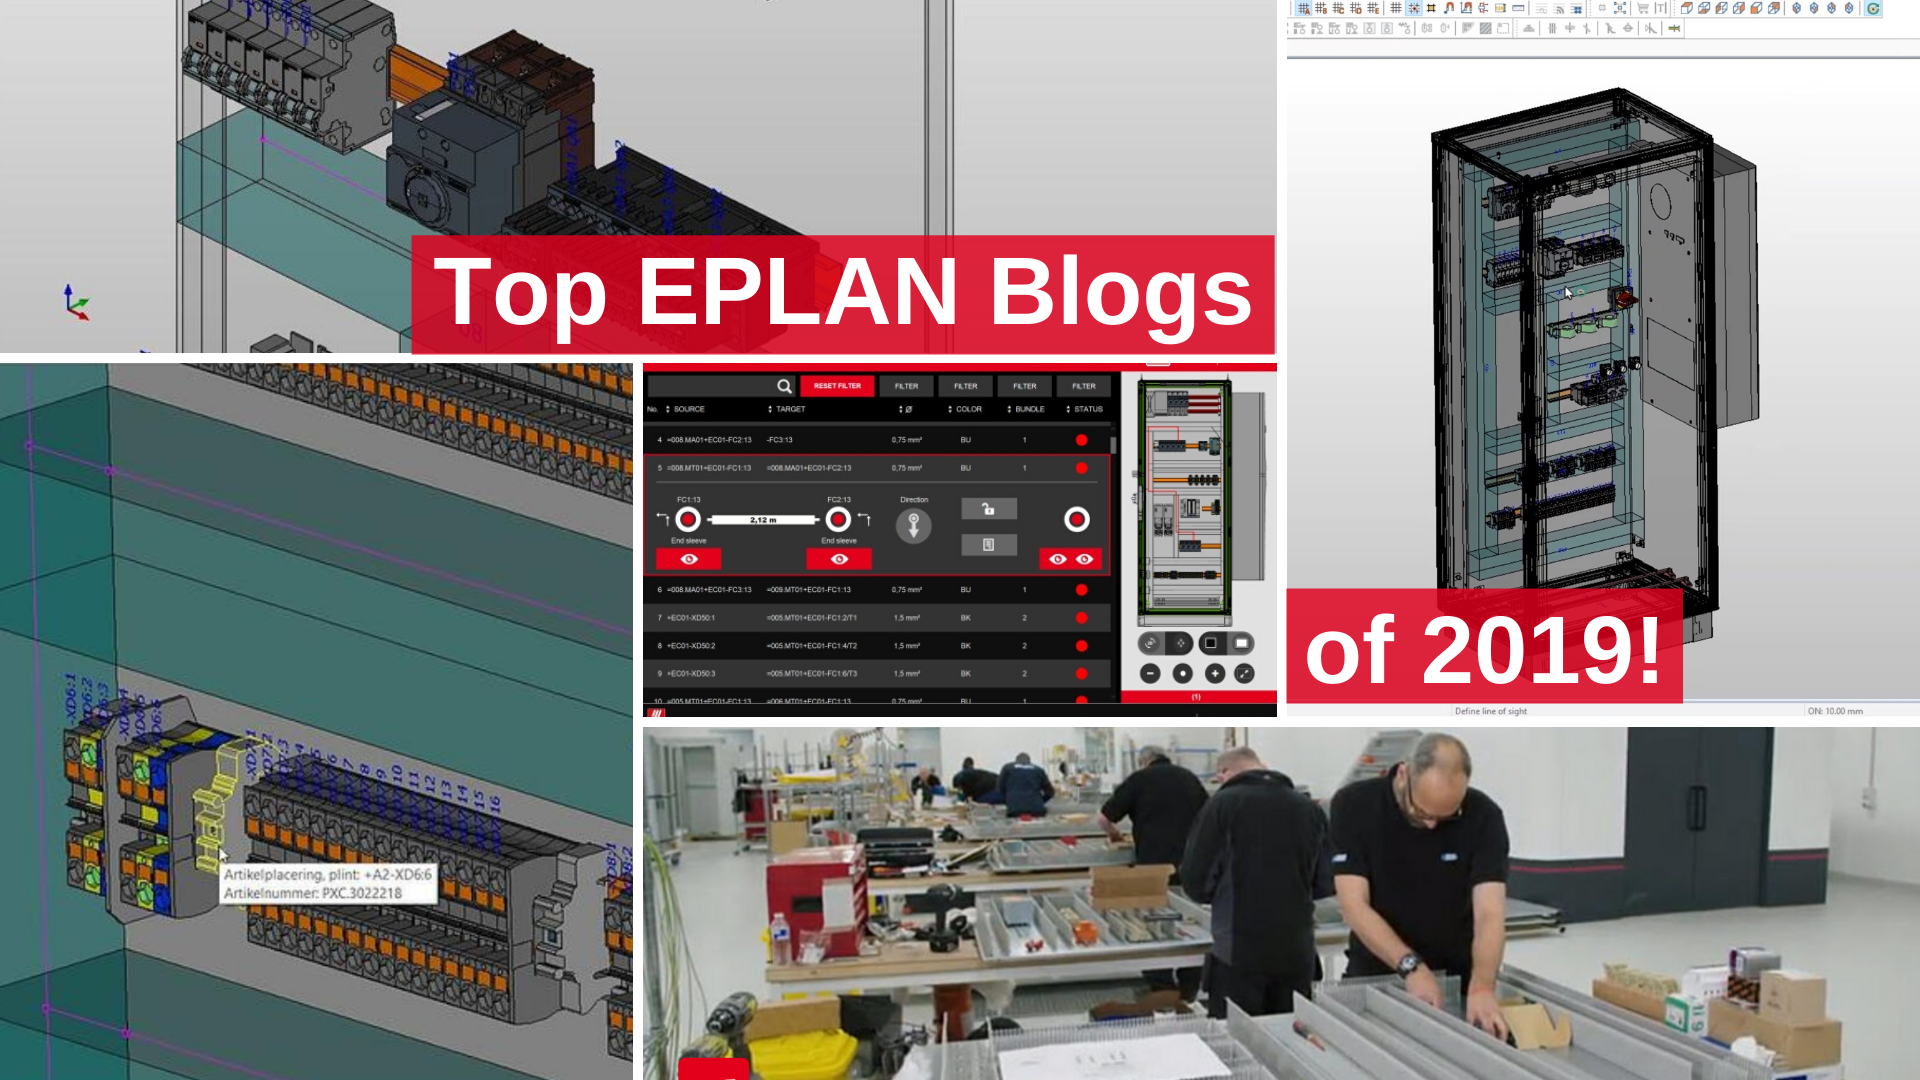 Top EPLAN blogs